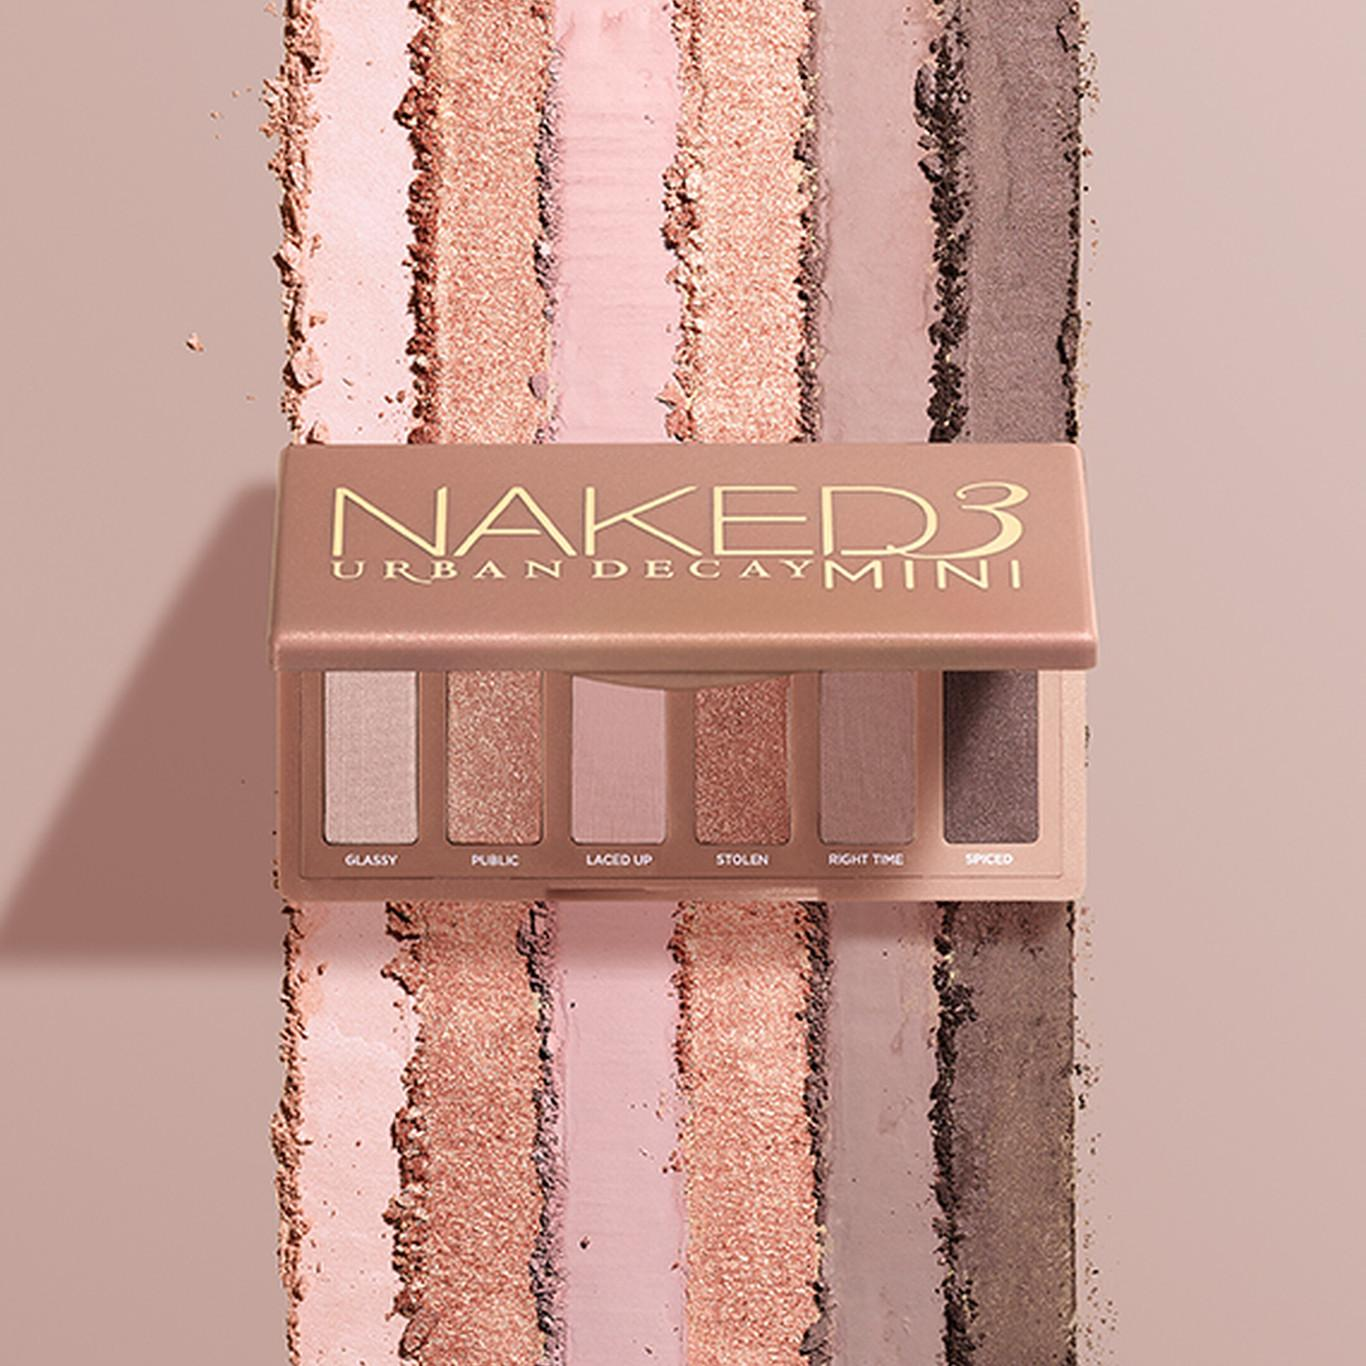 Urban Decay Naked3 Mini Eyeshadow Palette Open With Crash Swatches Promo